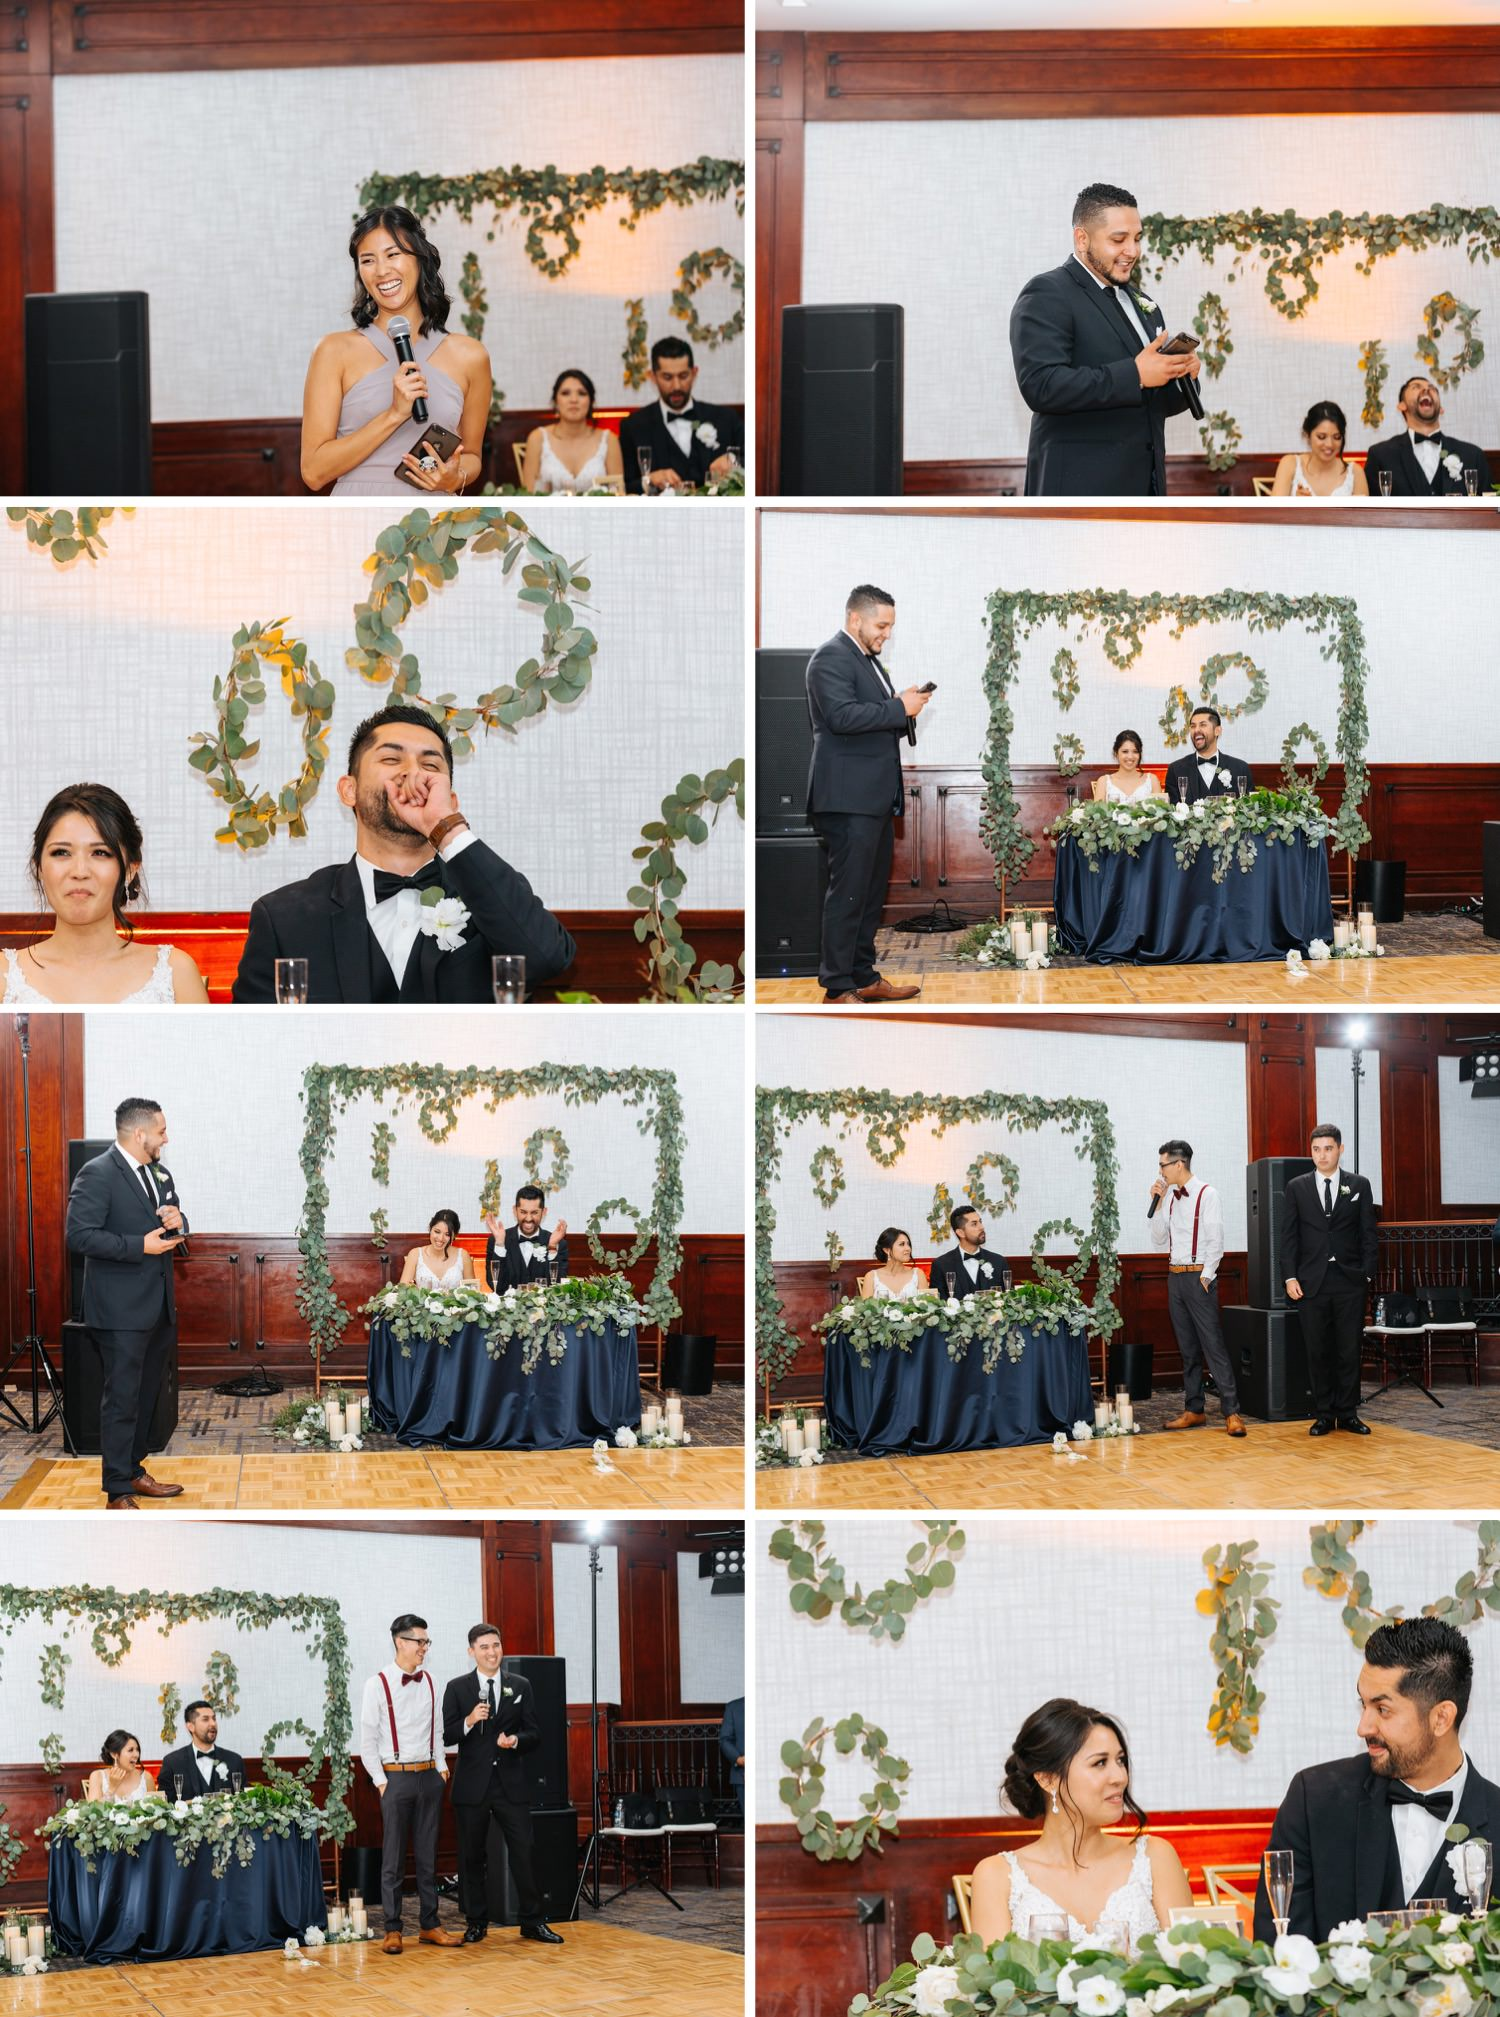 Wedding Party Toasts - LA Wedding Reception - https://brittneyhannonphotography.com